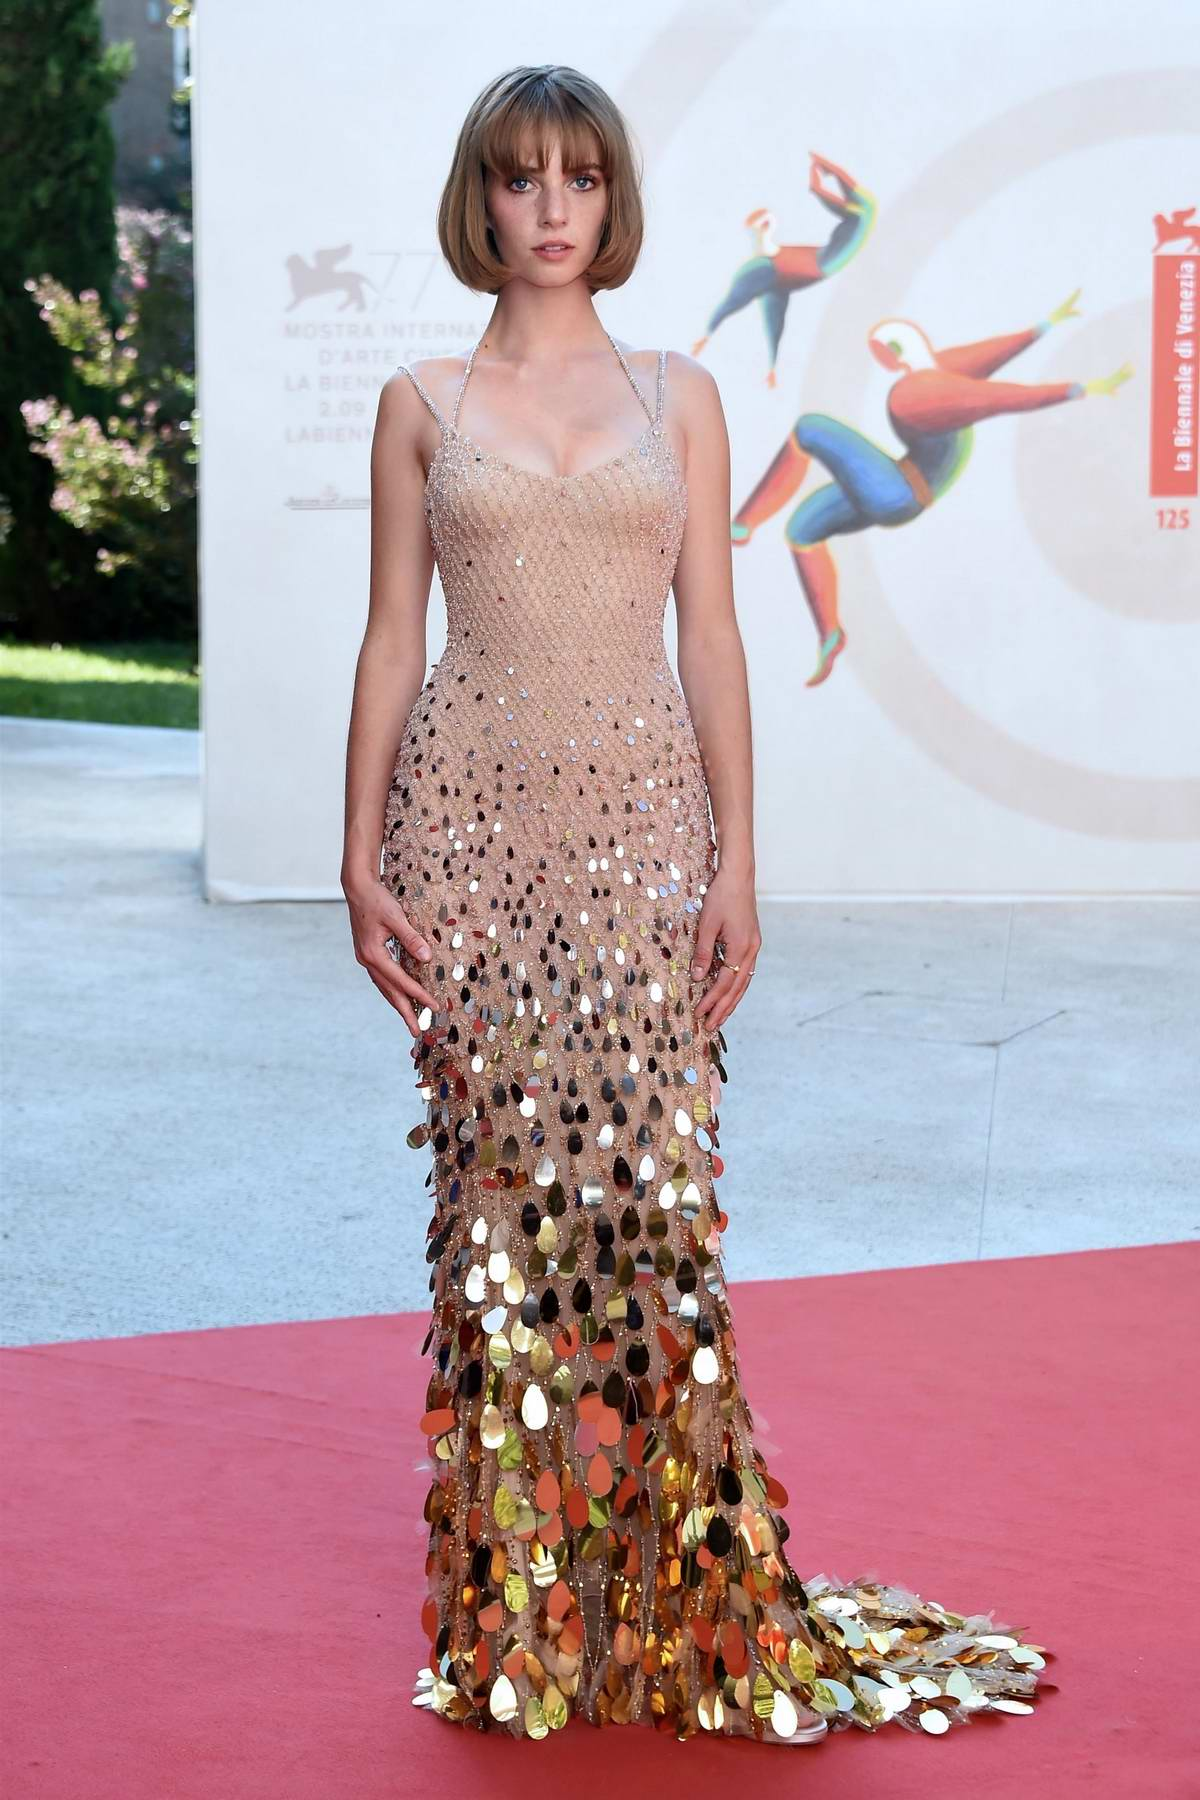 Maya Hawke attends the Premiere of 'Mainstream' during the 77th Venice Film Festival in Venice, Italy